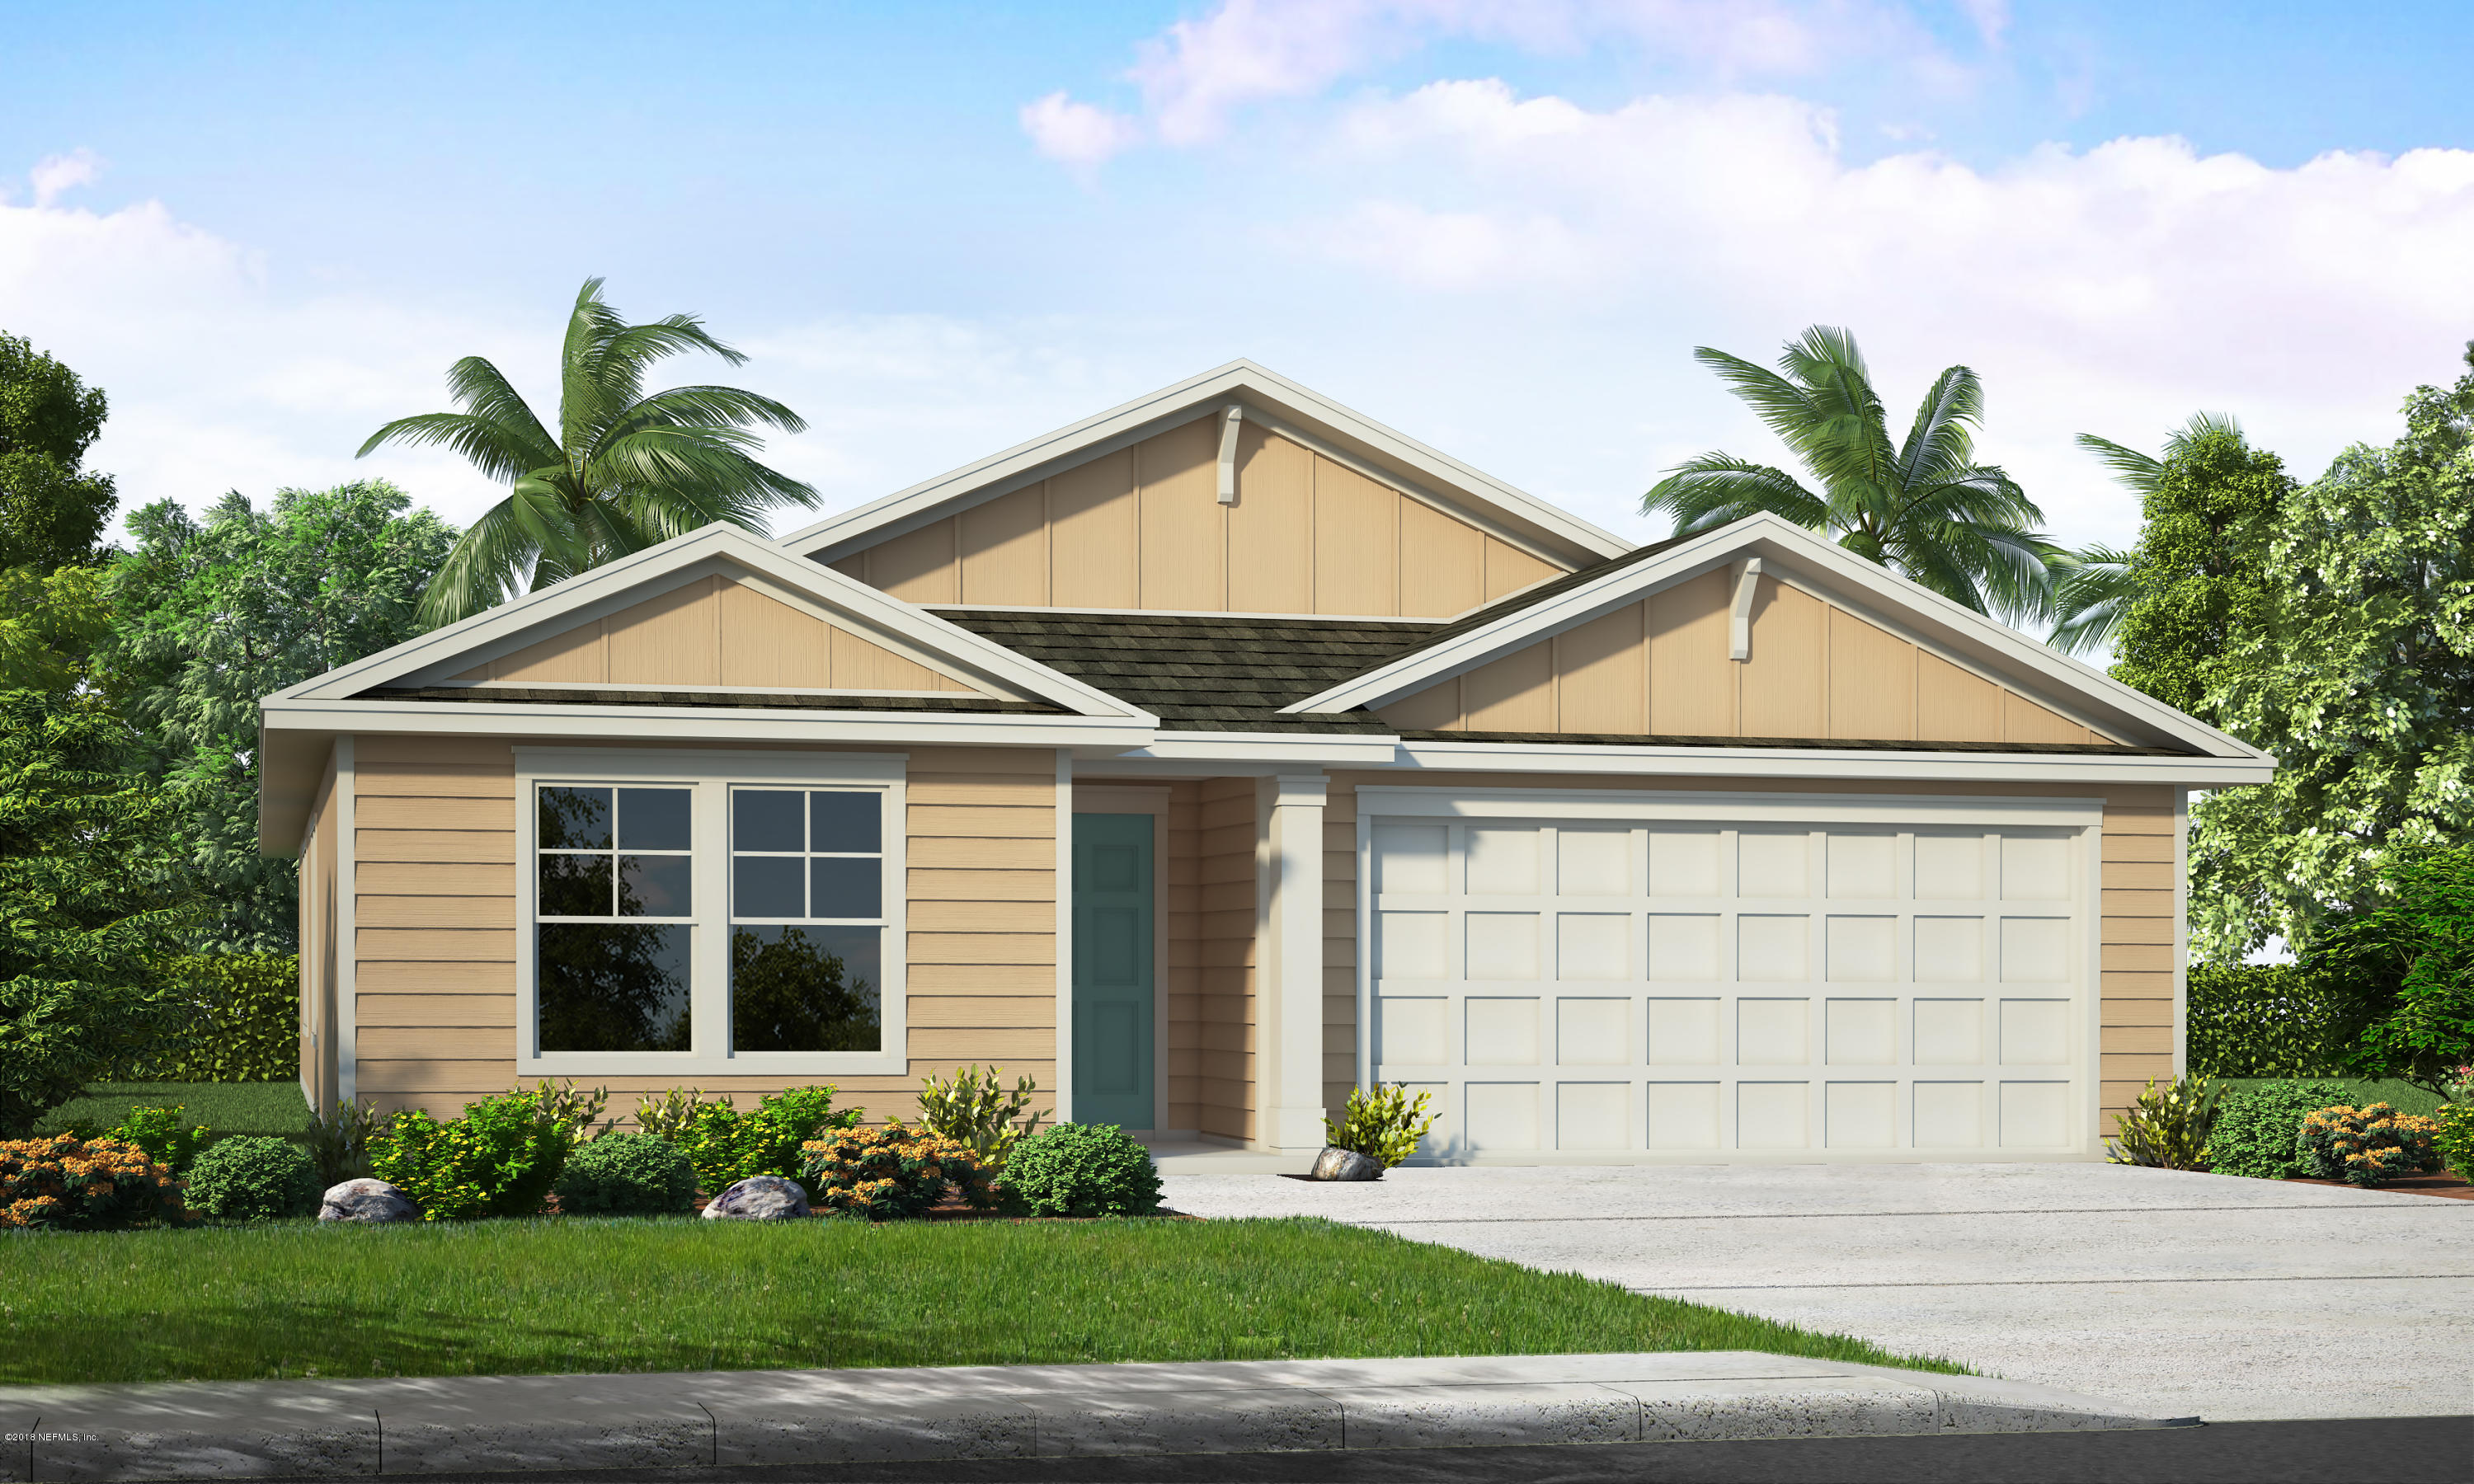 107 PICKETT, ST AUGUSTINE, FLORIDA 32084, 3 Bedrooms Bedrooms, ,2 BathroomsBathrooms,Residential - single family,For sale,PICKETT,957480